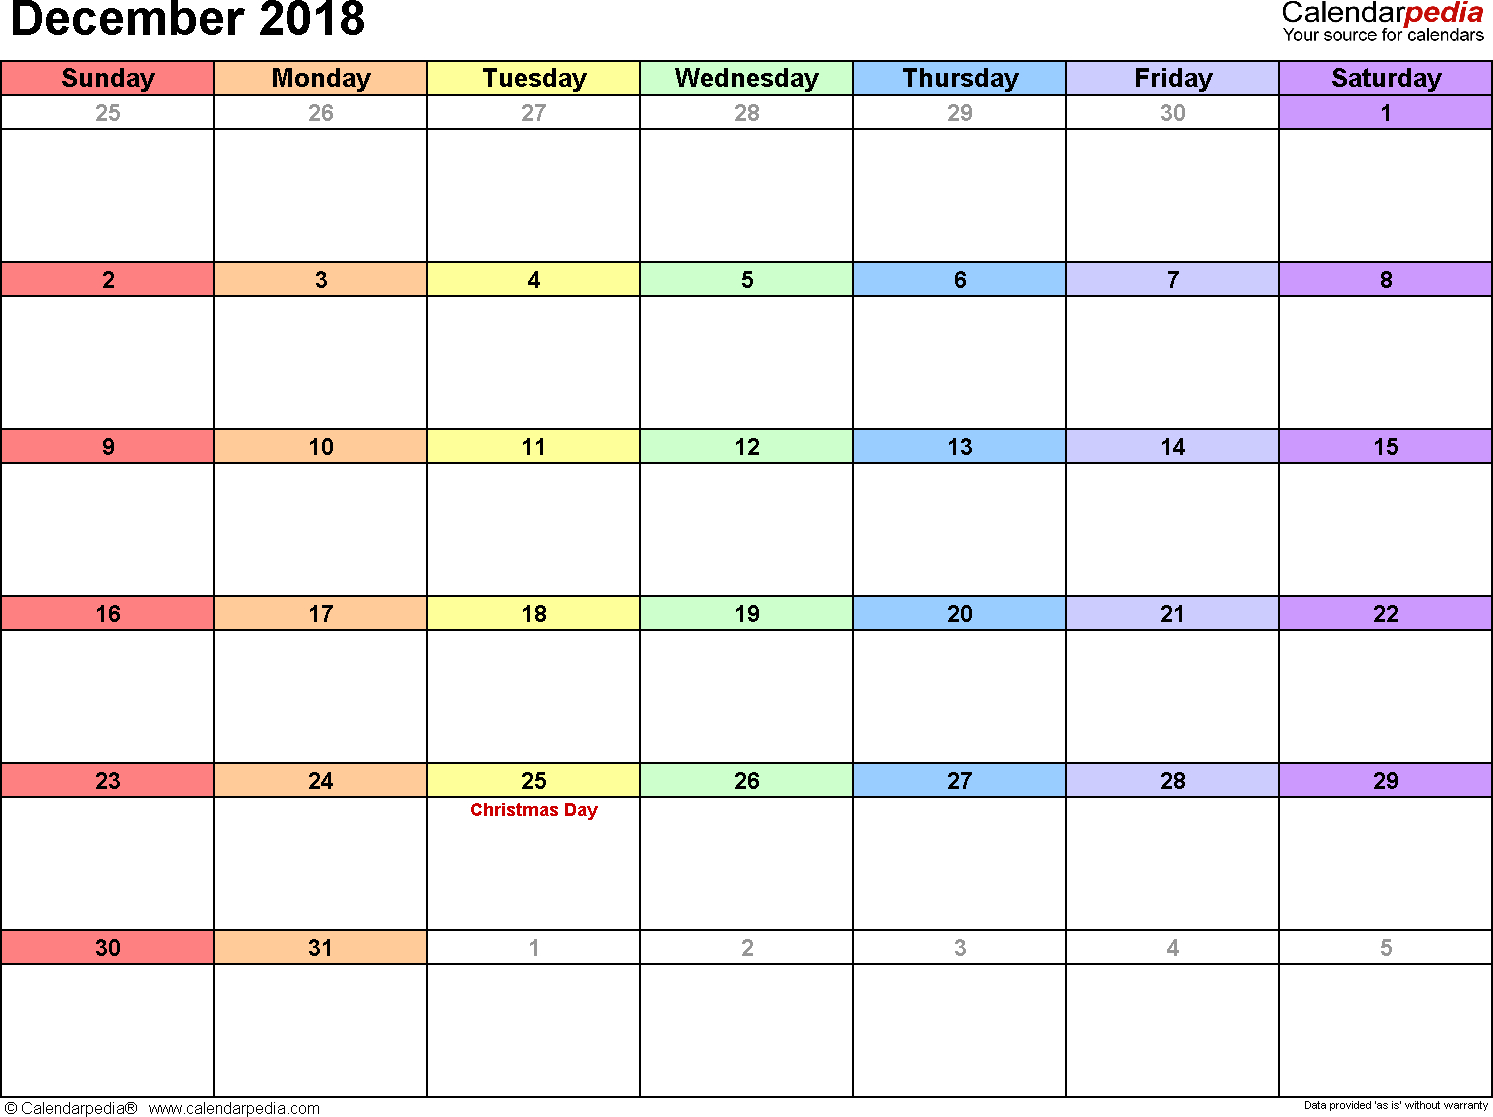 December 2018 Calendars For Word, Excel & Pdf with Blank Printable Calendar December